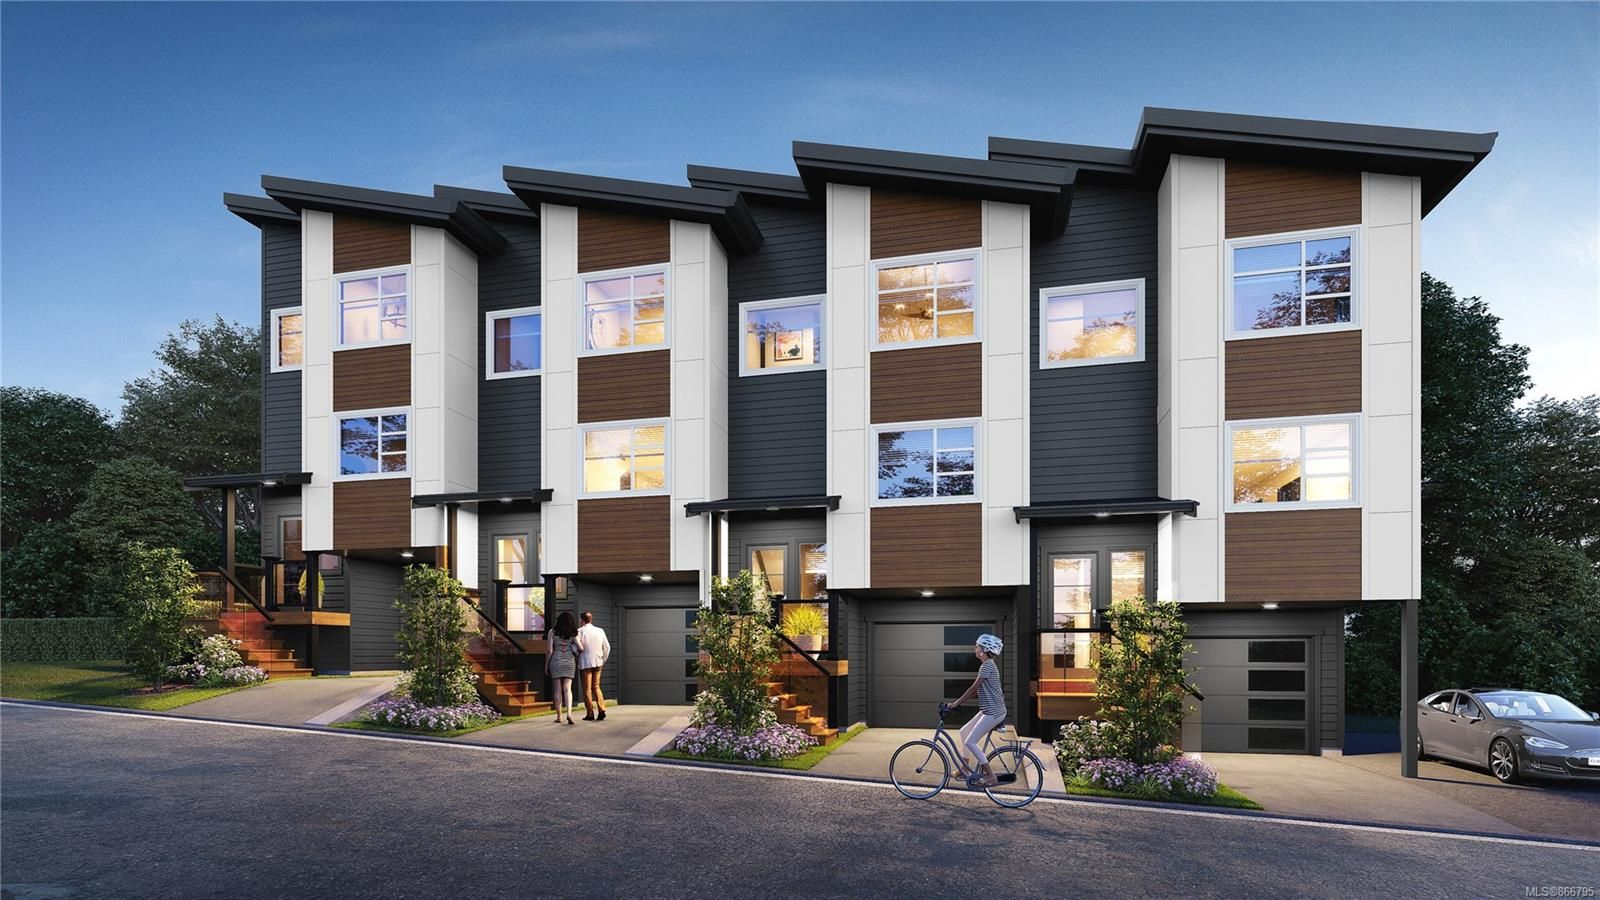 Main Photo: 108 3429 Happy Valley Rd in : La Happy Valley Row/Townhouse for sale (Langford)  : MLS®# 866795